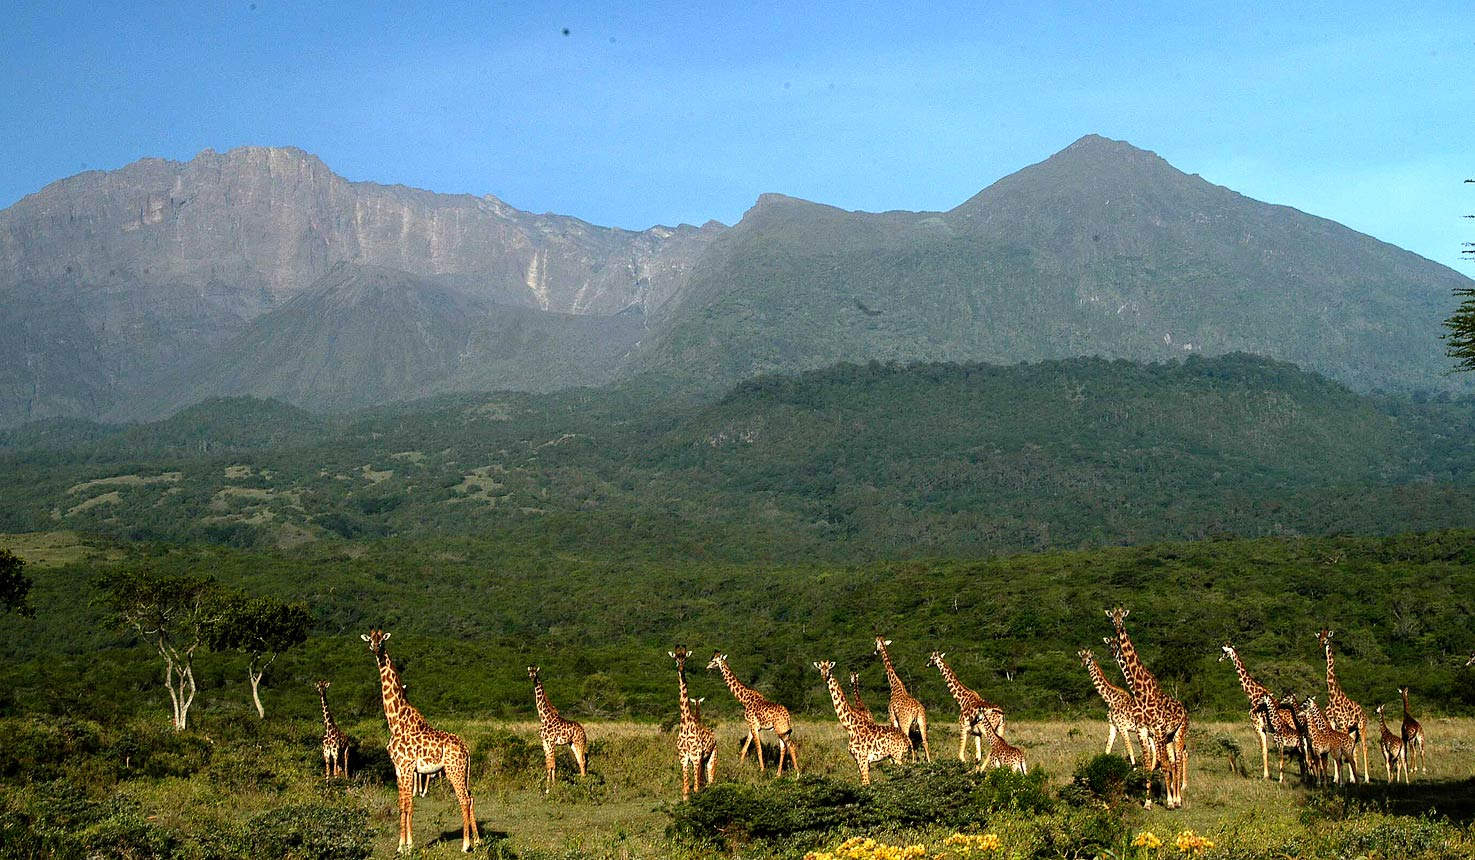 Mount Meru in Arusha National Park